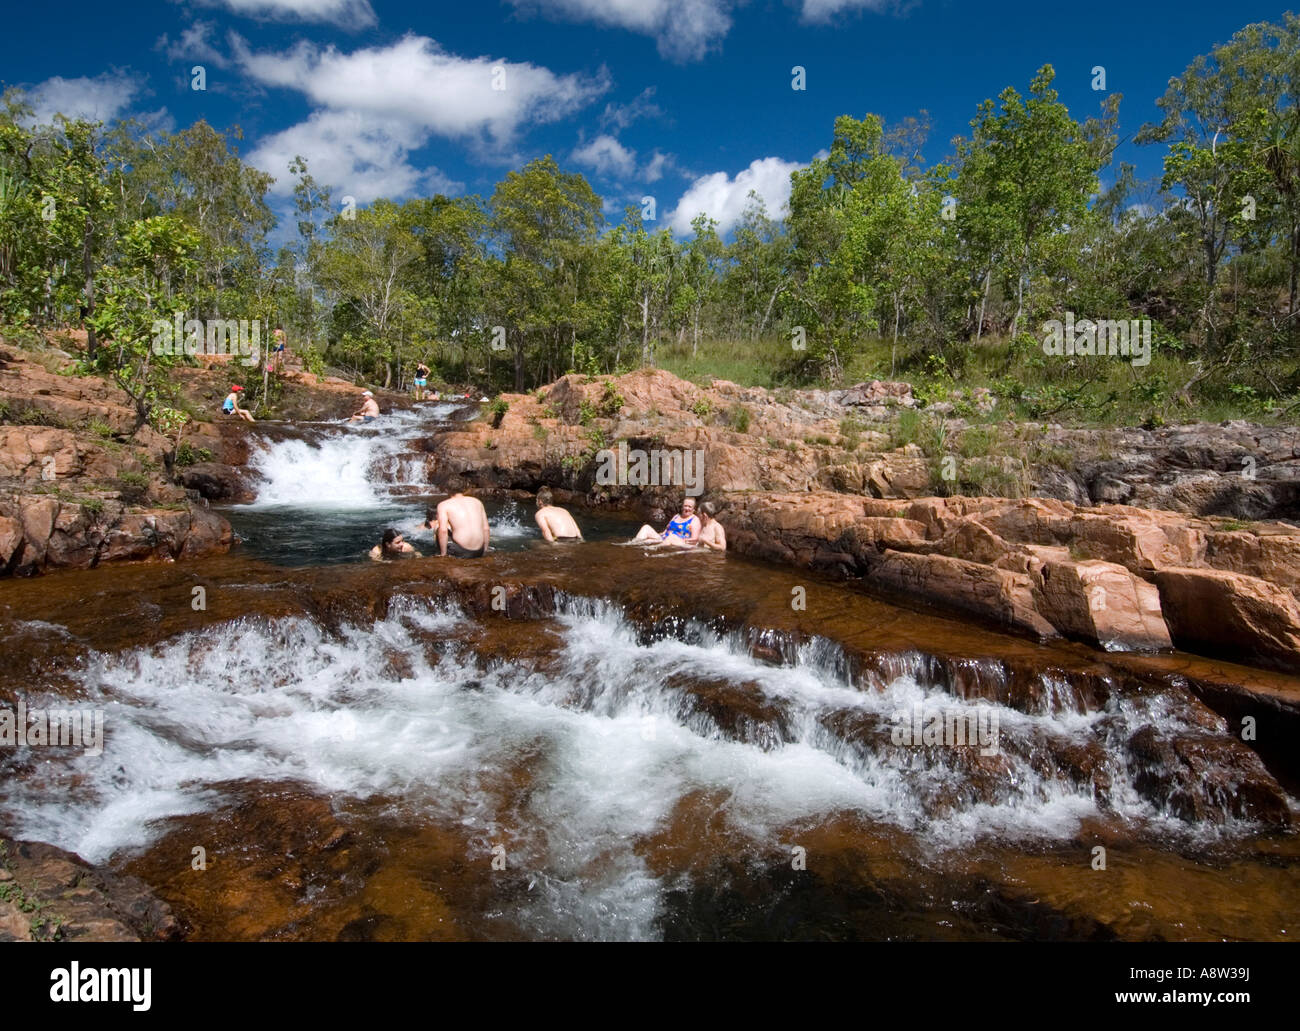 Buley Rockhole pools and stream in Litchfield National Park Northern Territories Australia - Stock Image